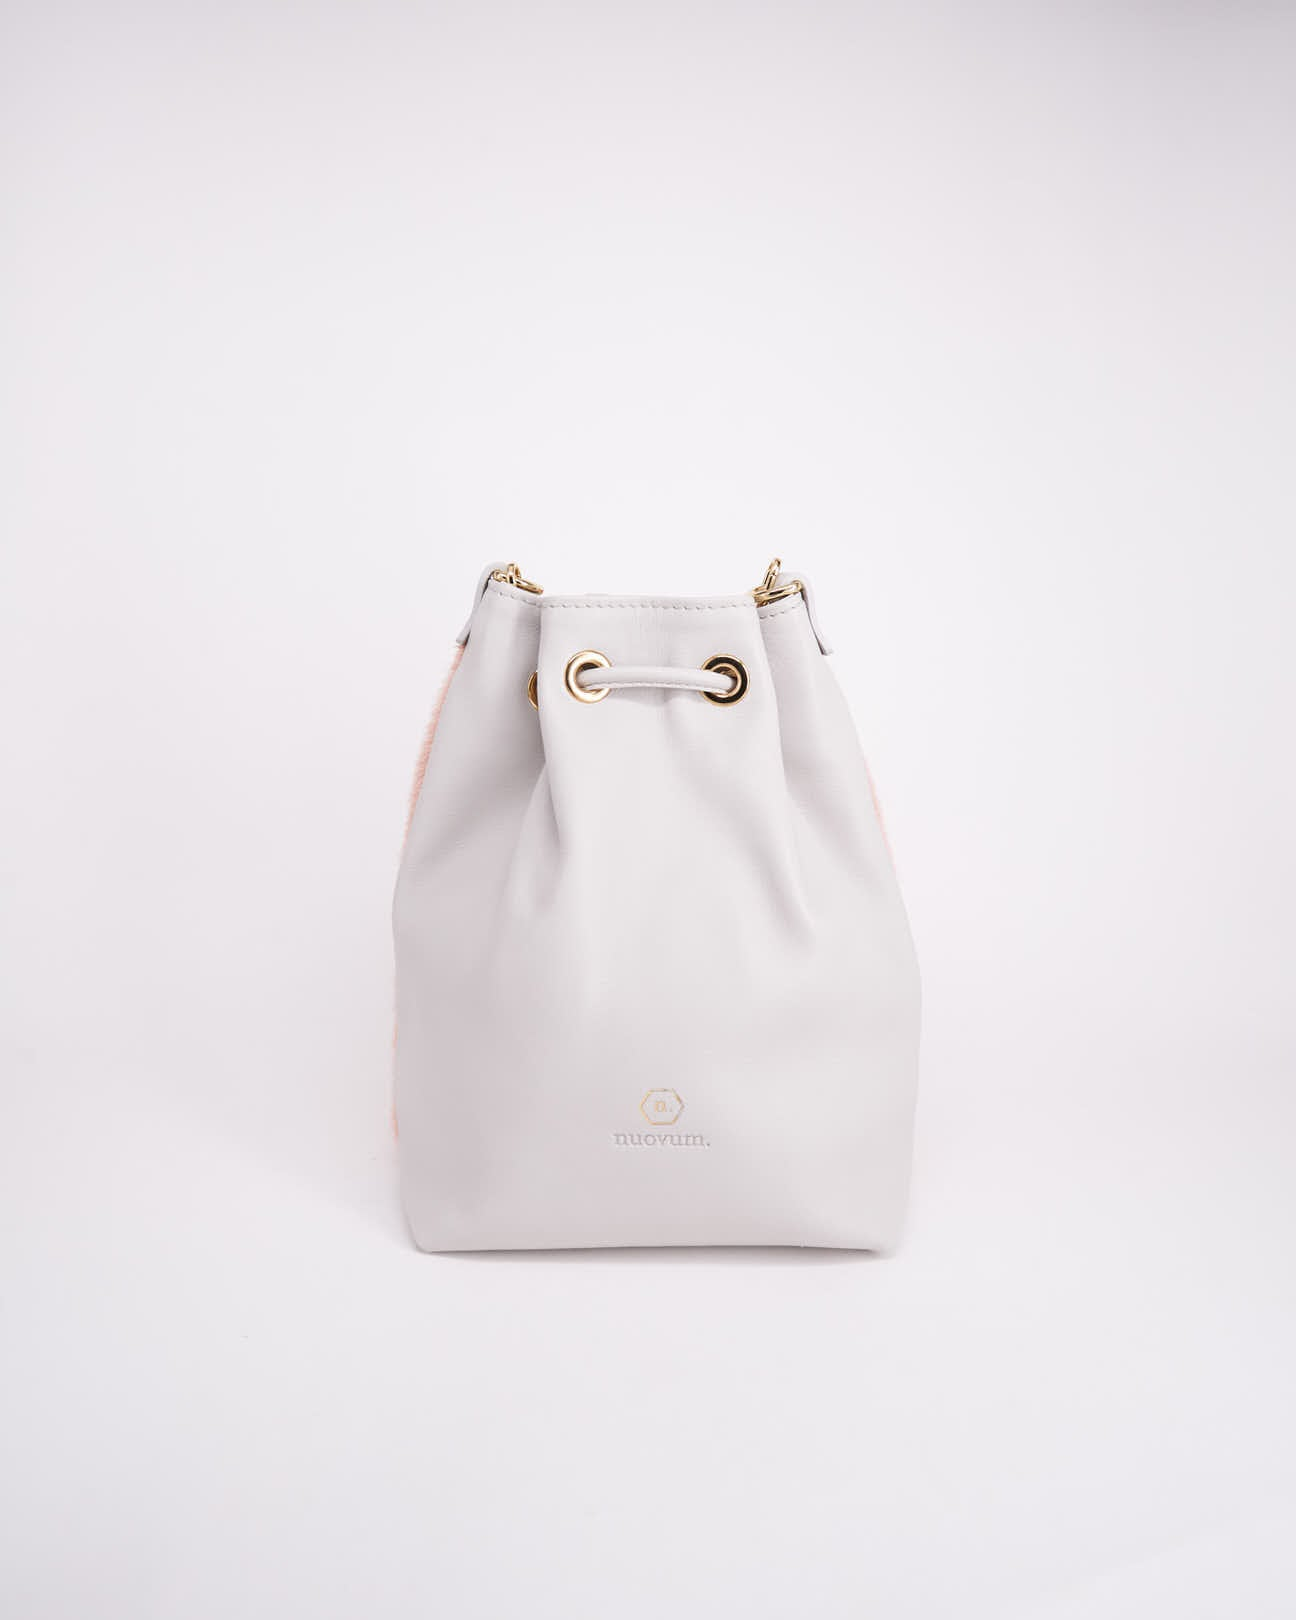 Bag-Nuo Sac-Nuovum-Leather-White-localdesigners-Barcelona-Nuovum-Handmade-back